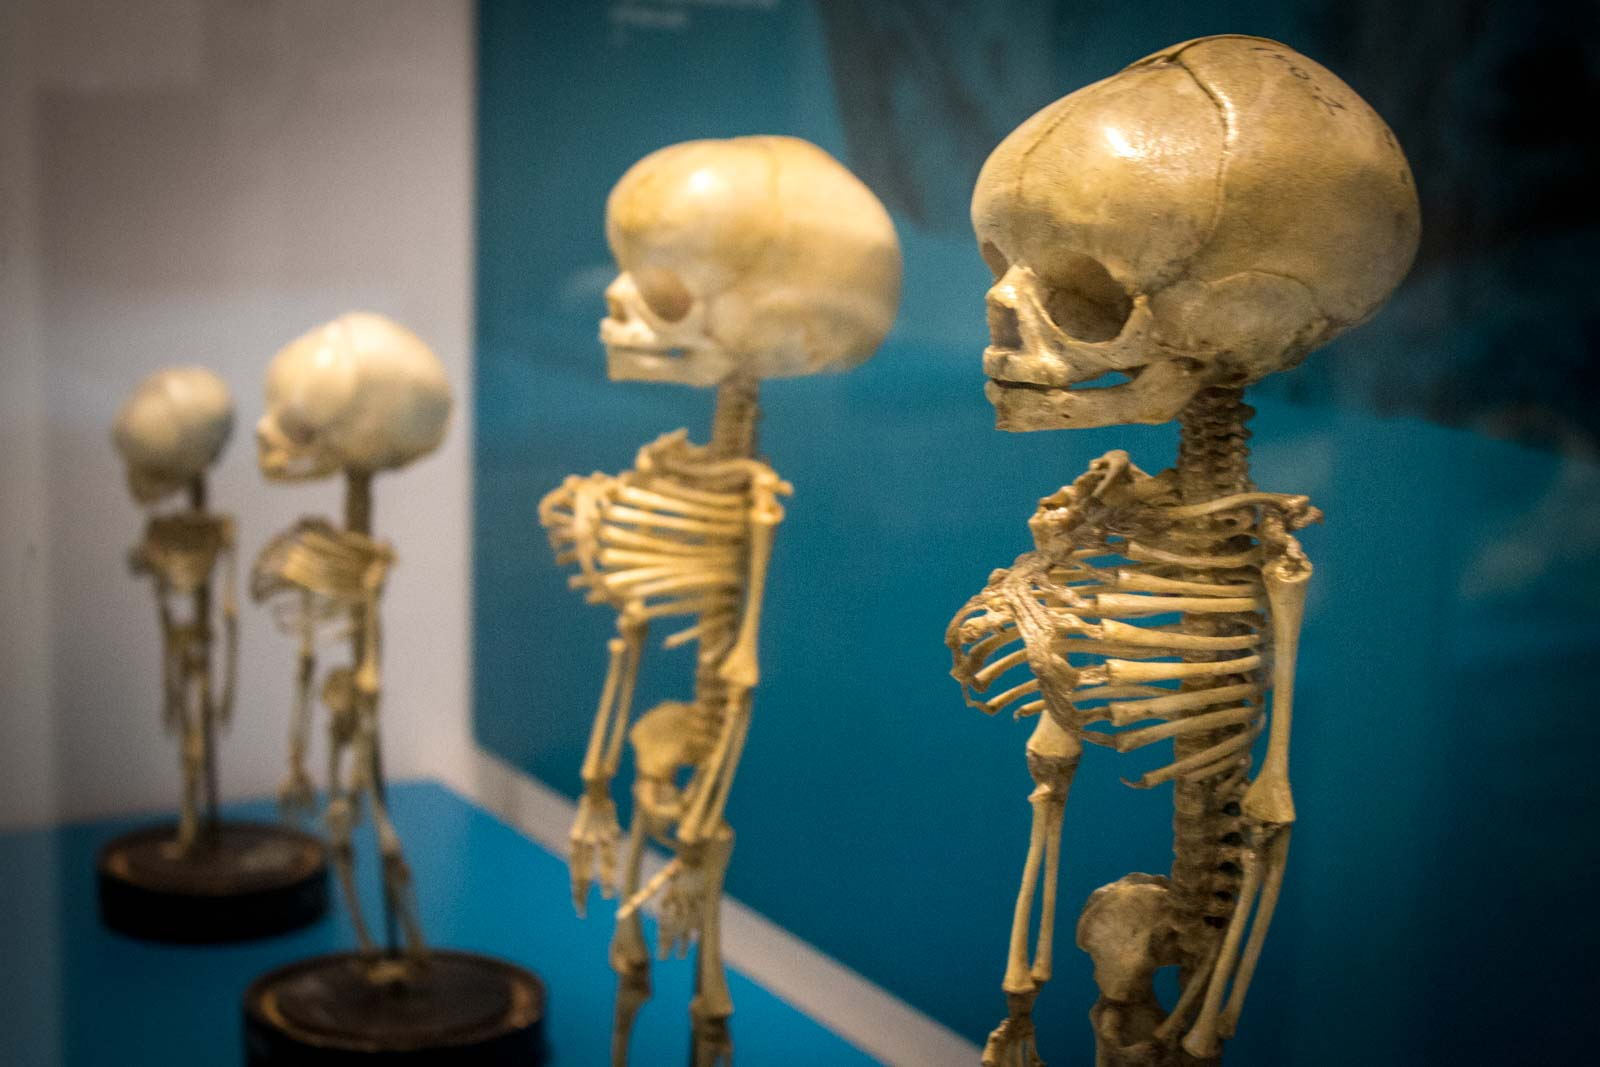 The National Museum of Health and Medicine – Washington, D.C.